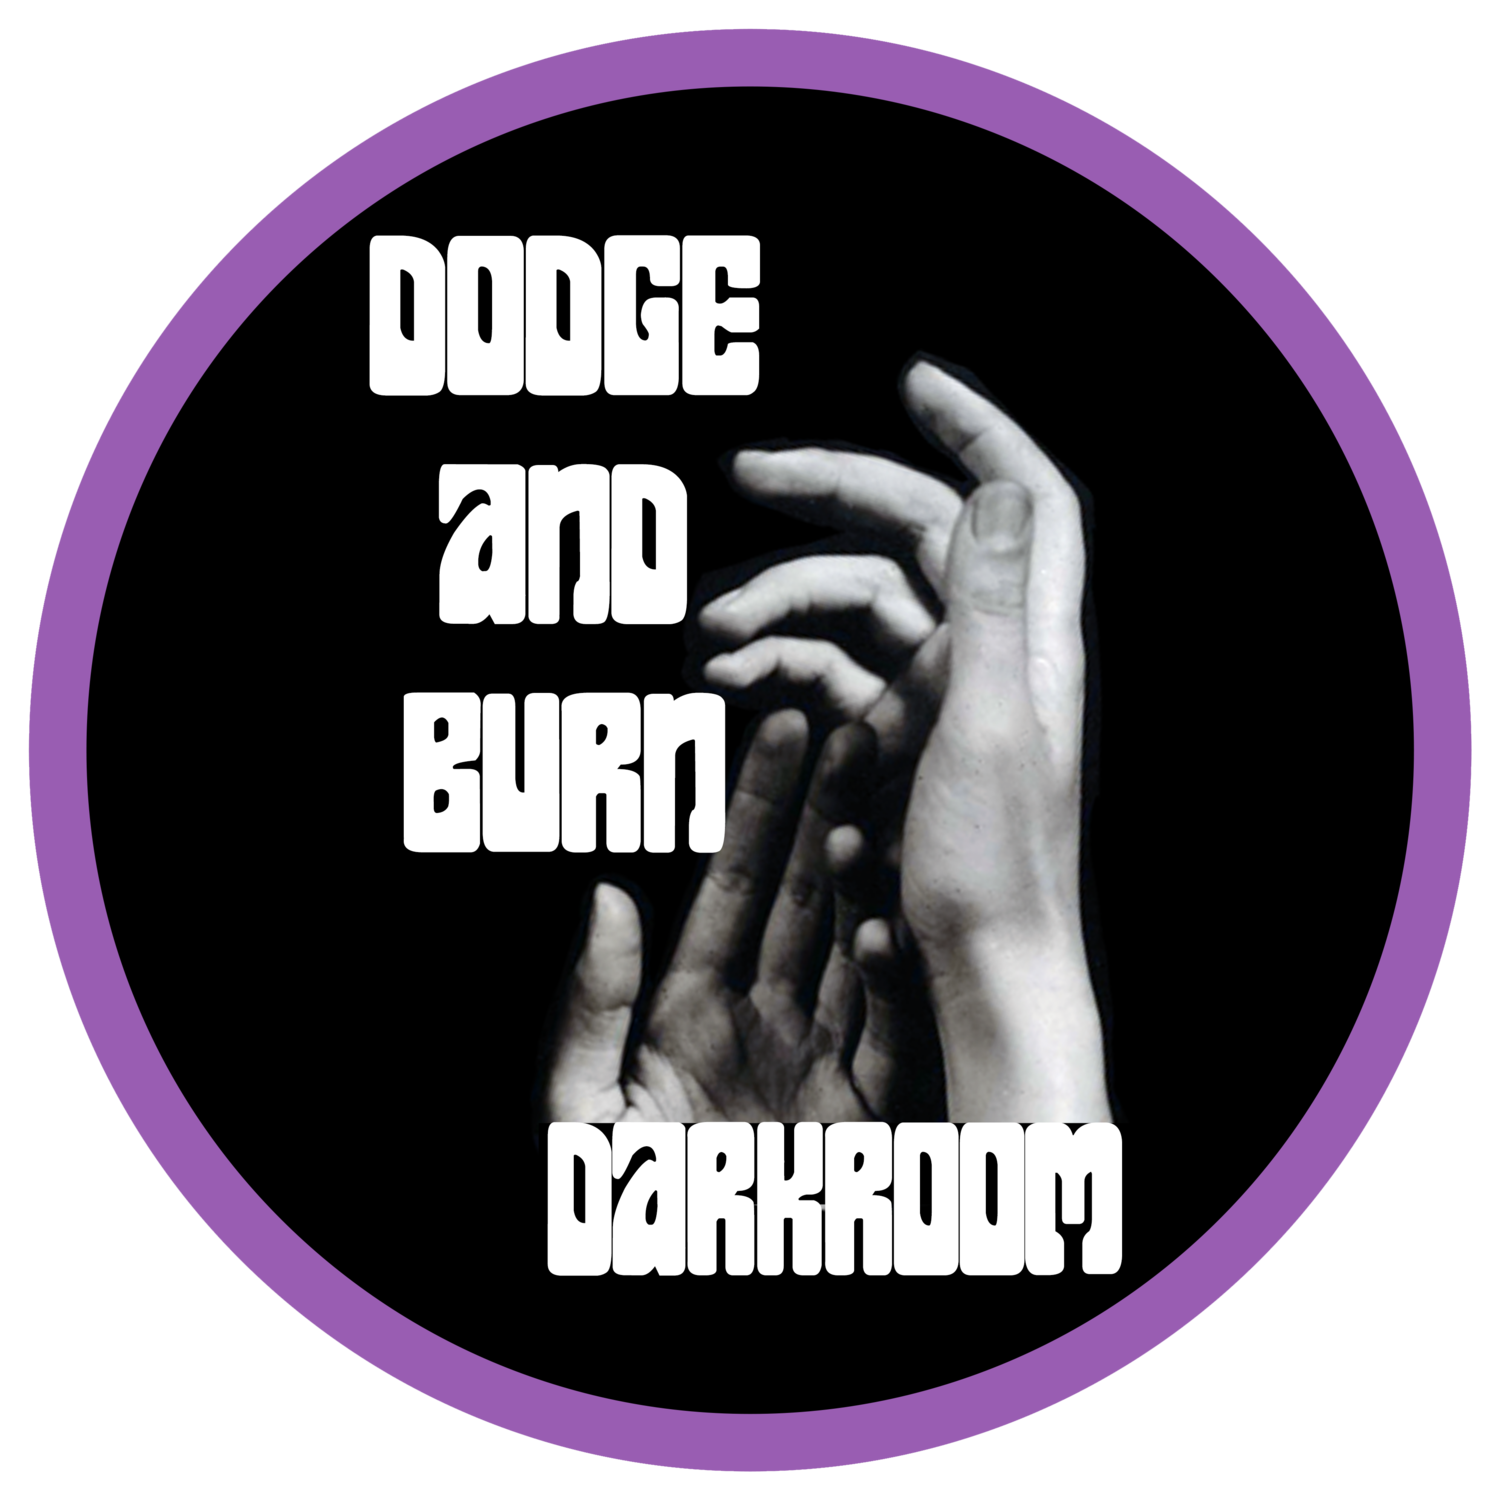 Dodge and Burn Darkroom